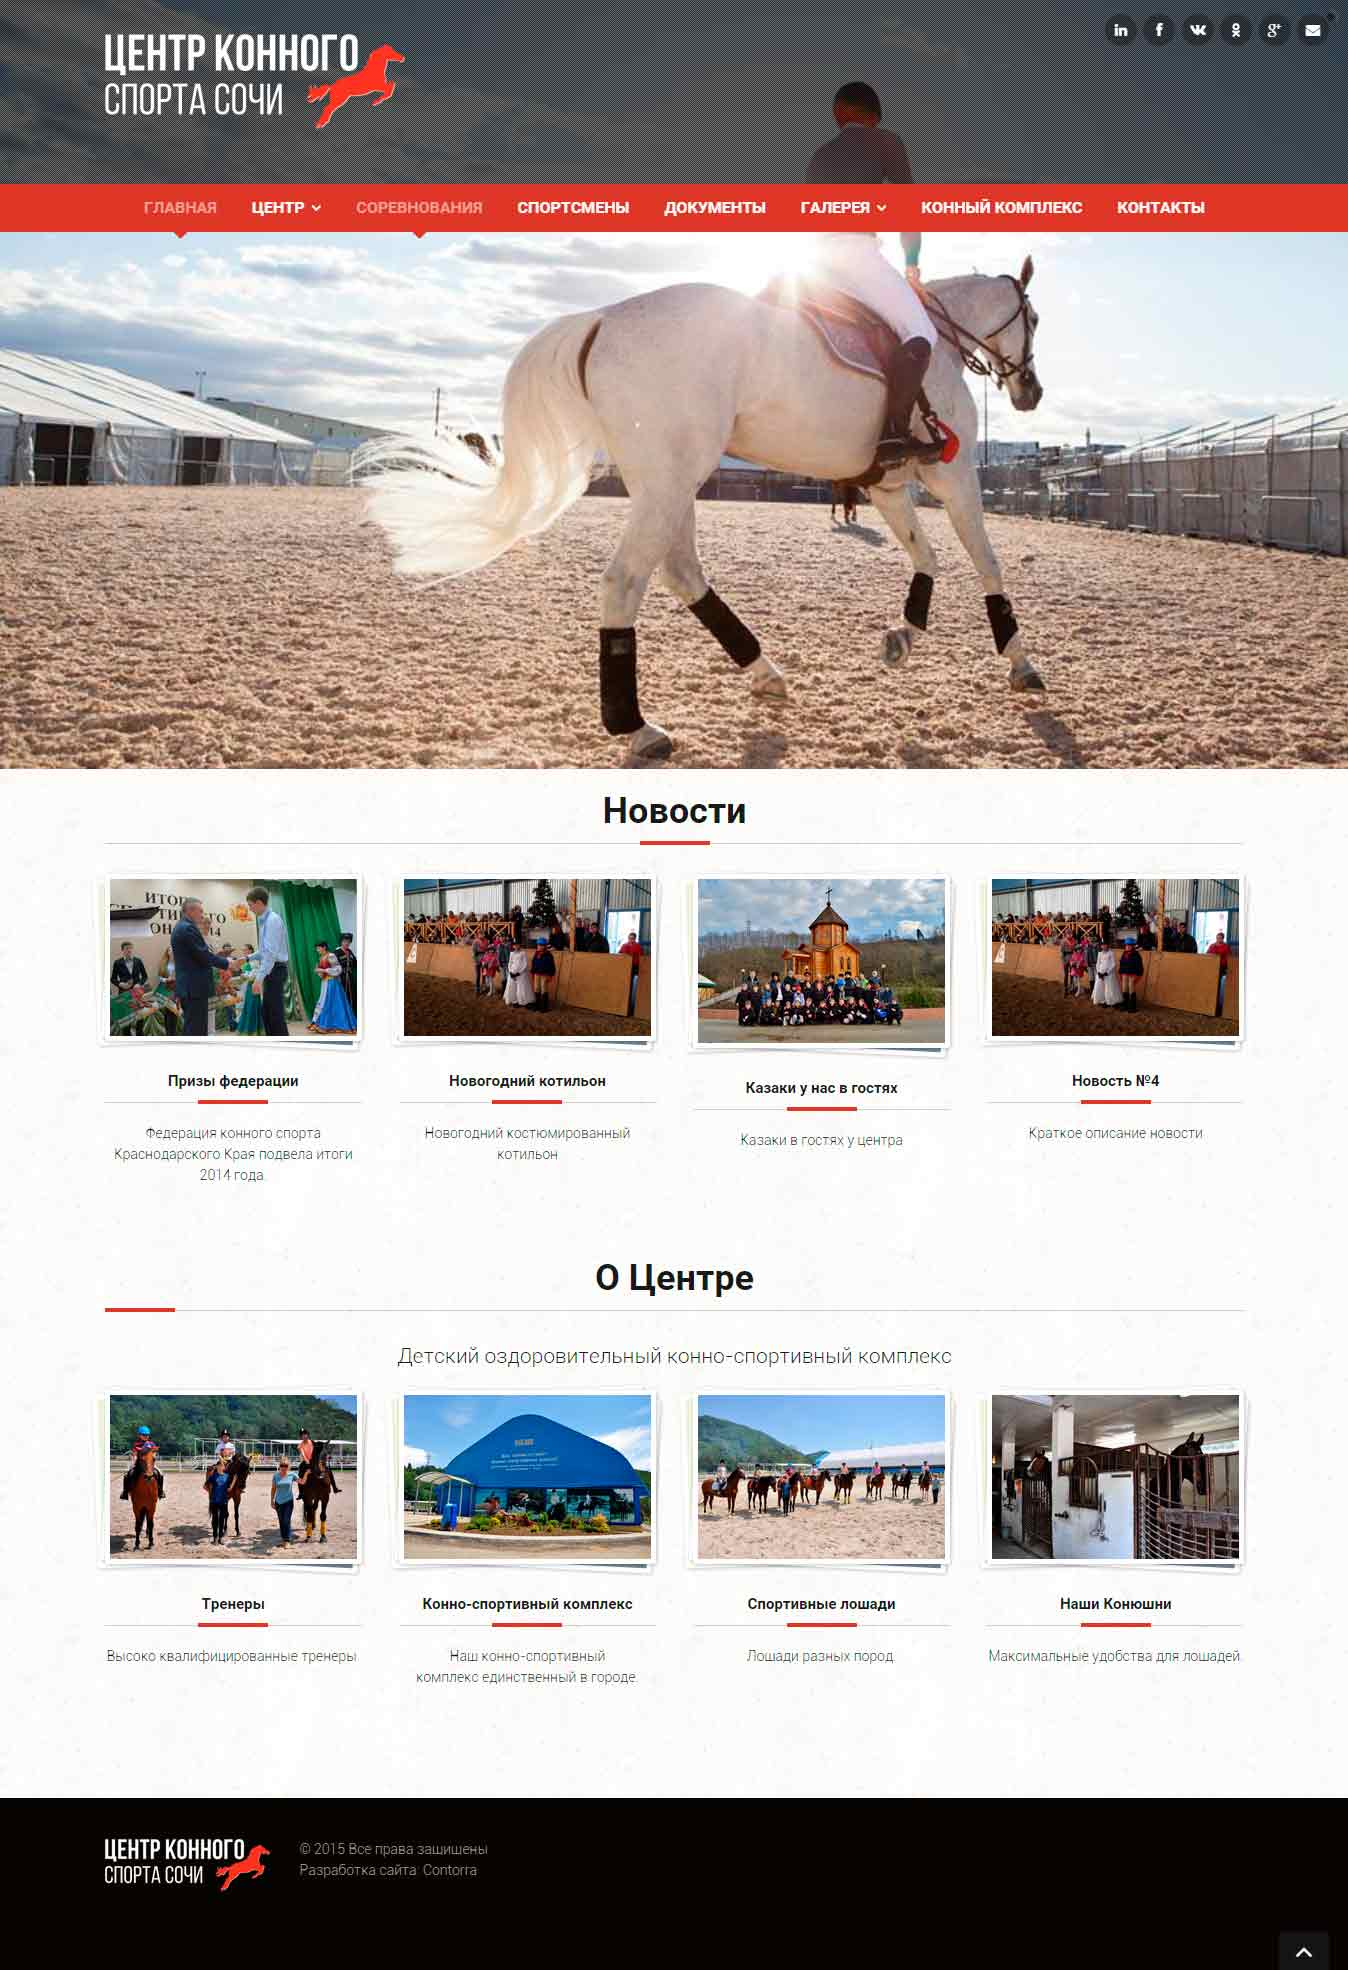 Main page - Horse riding center